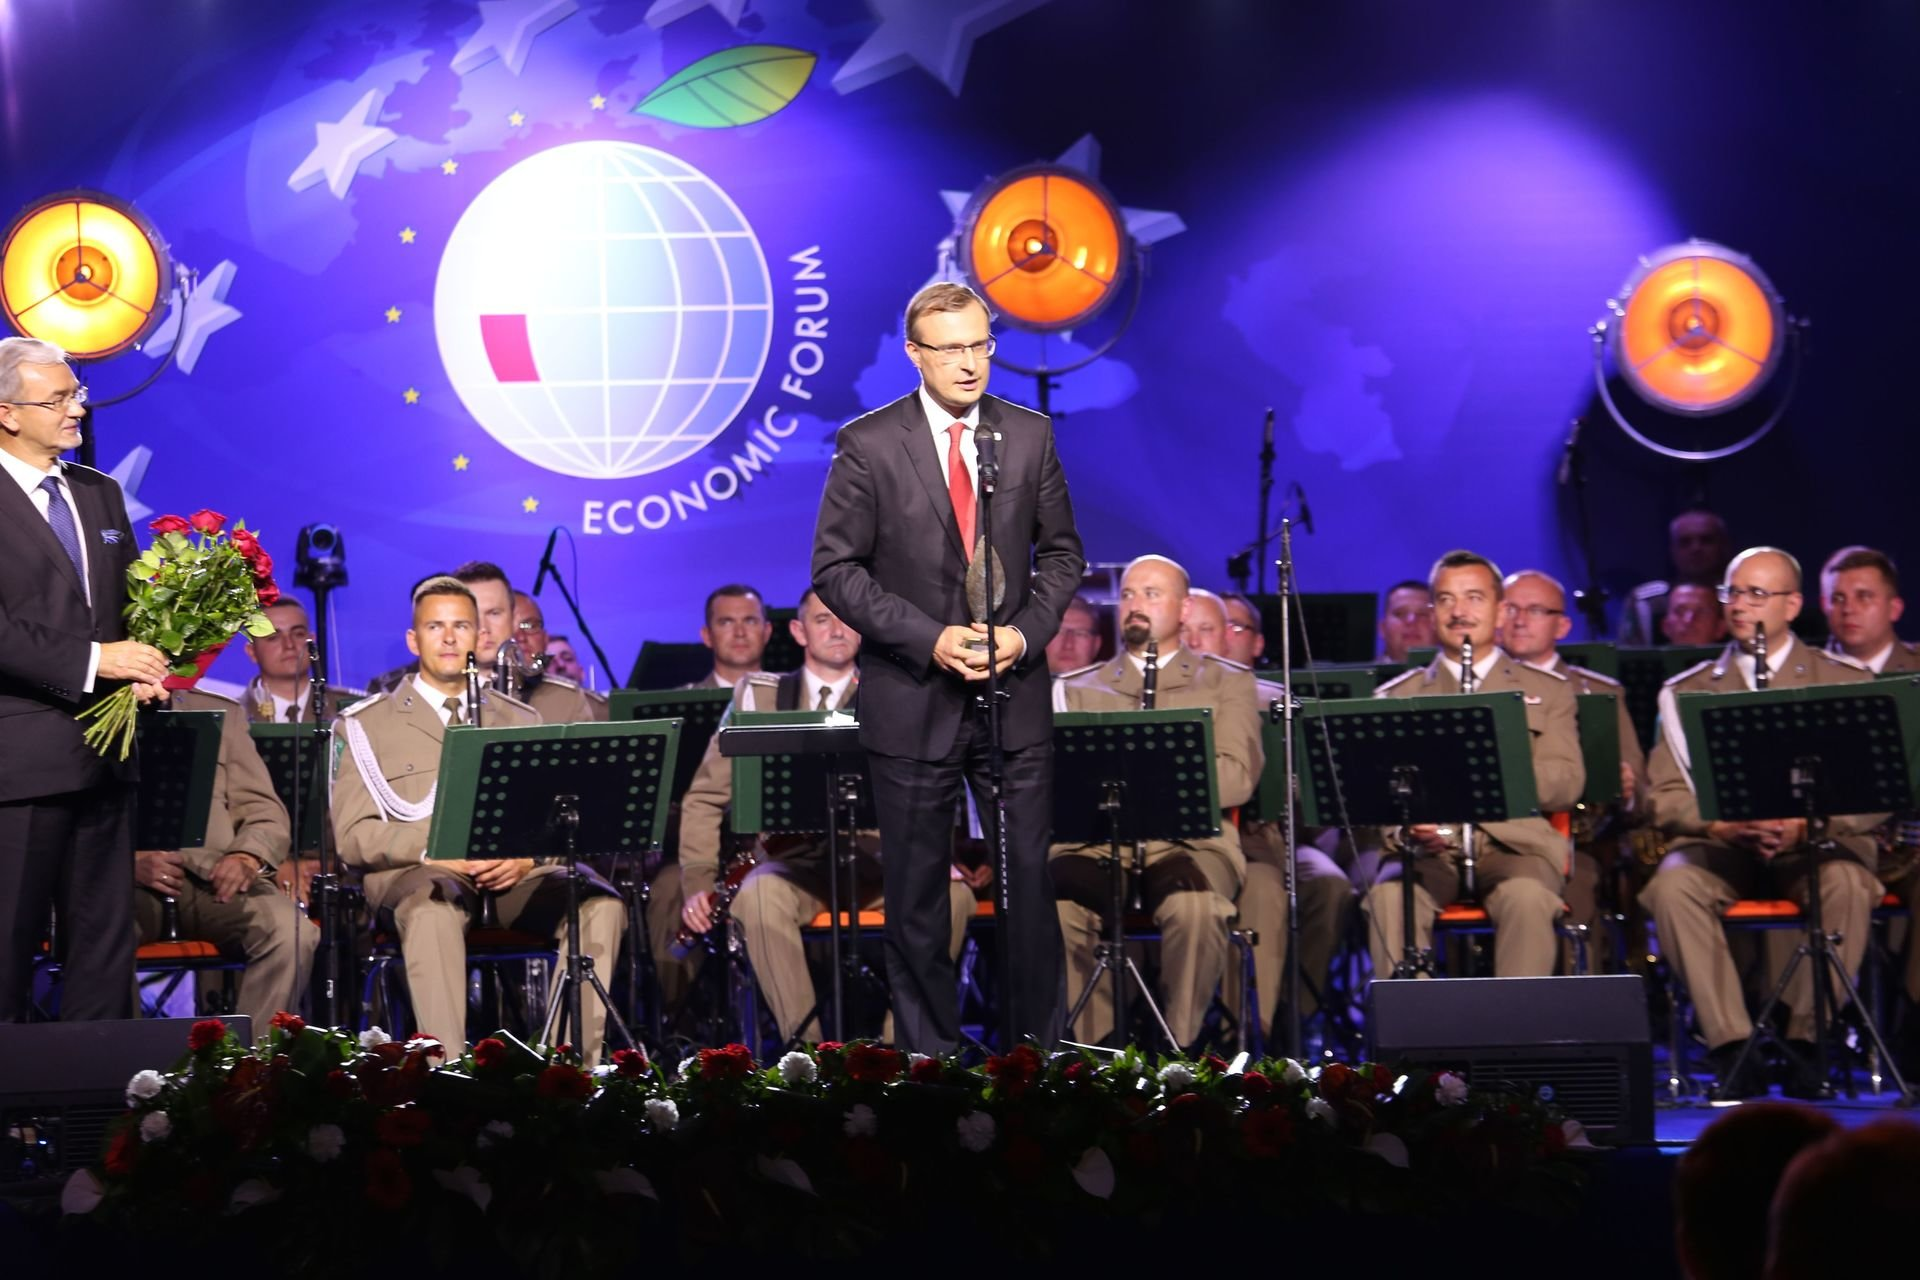 Polish Development Fund Awarded 'Company Of The Year' Title At Krynica Economic Forum